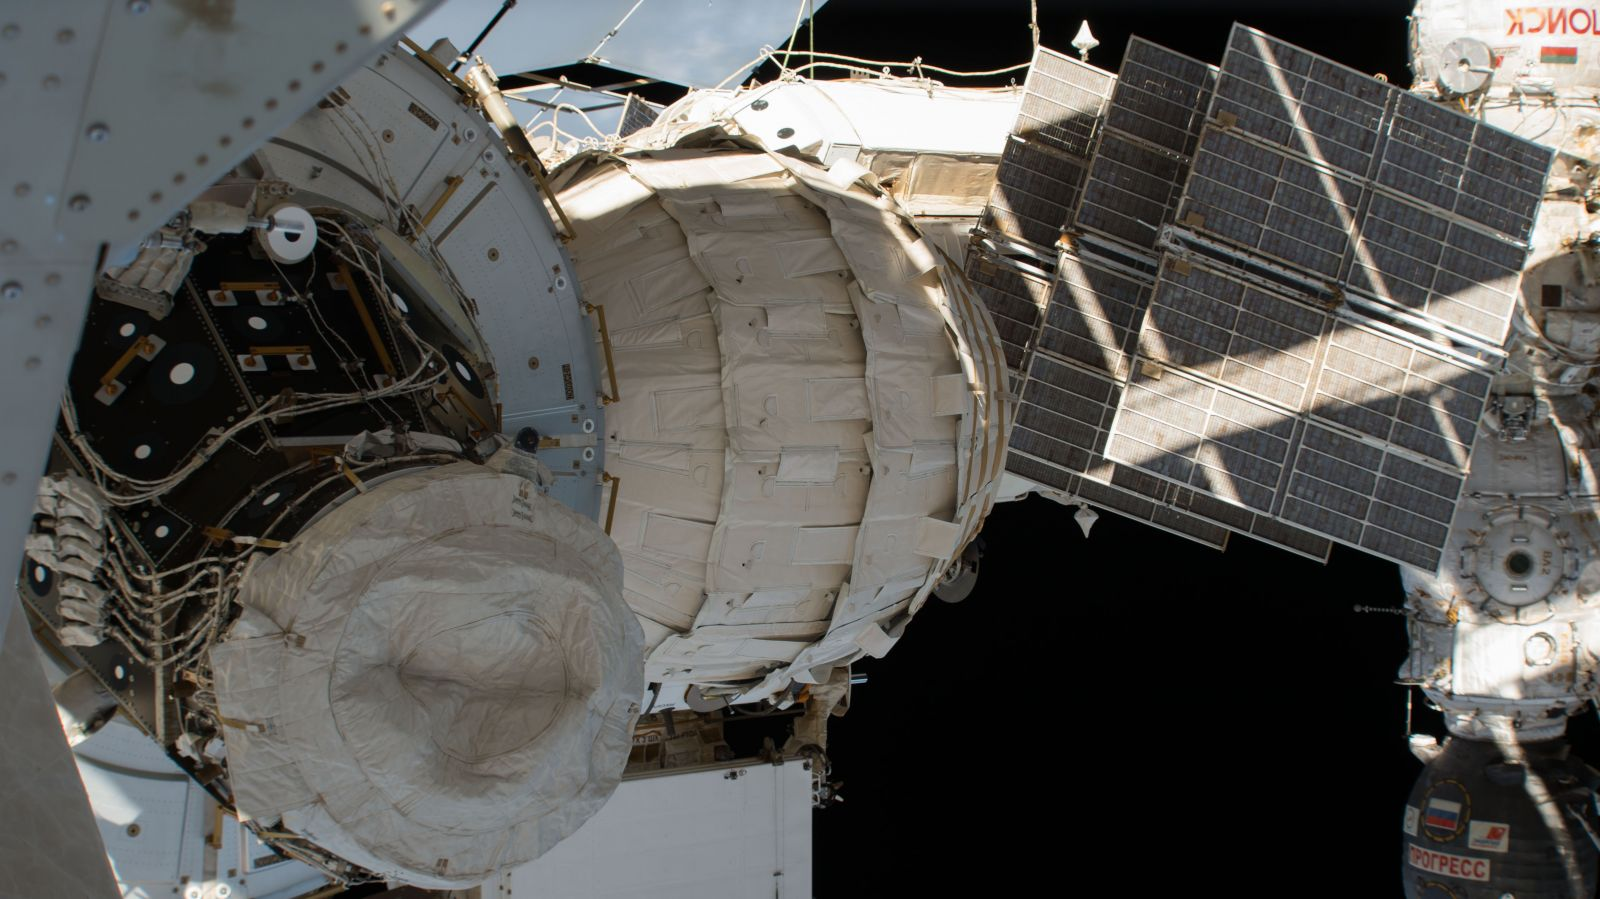 A fully expanded BEAM module on the aft port of the  Tranquility  node module. Photo Credit: NASA